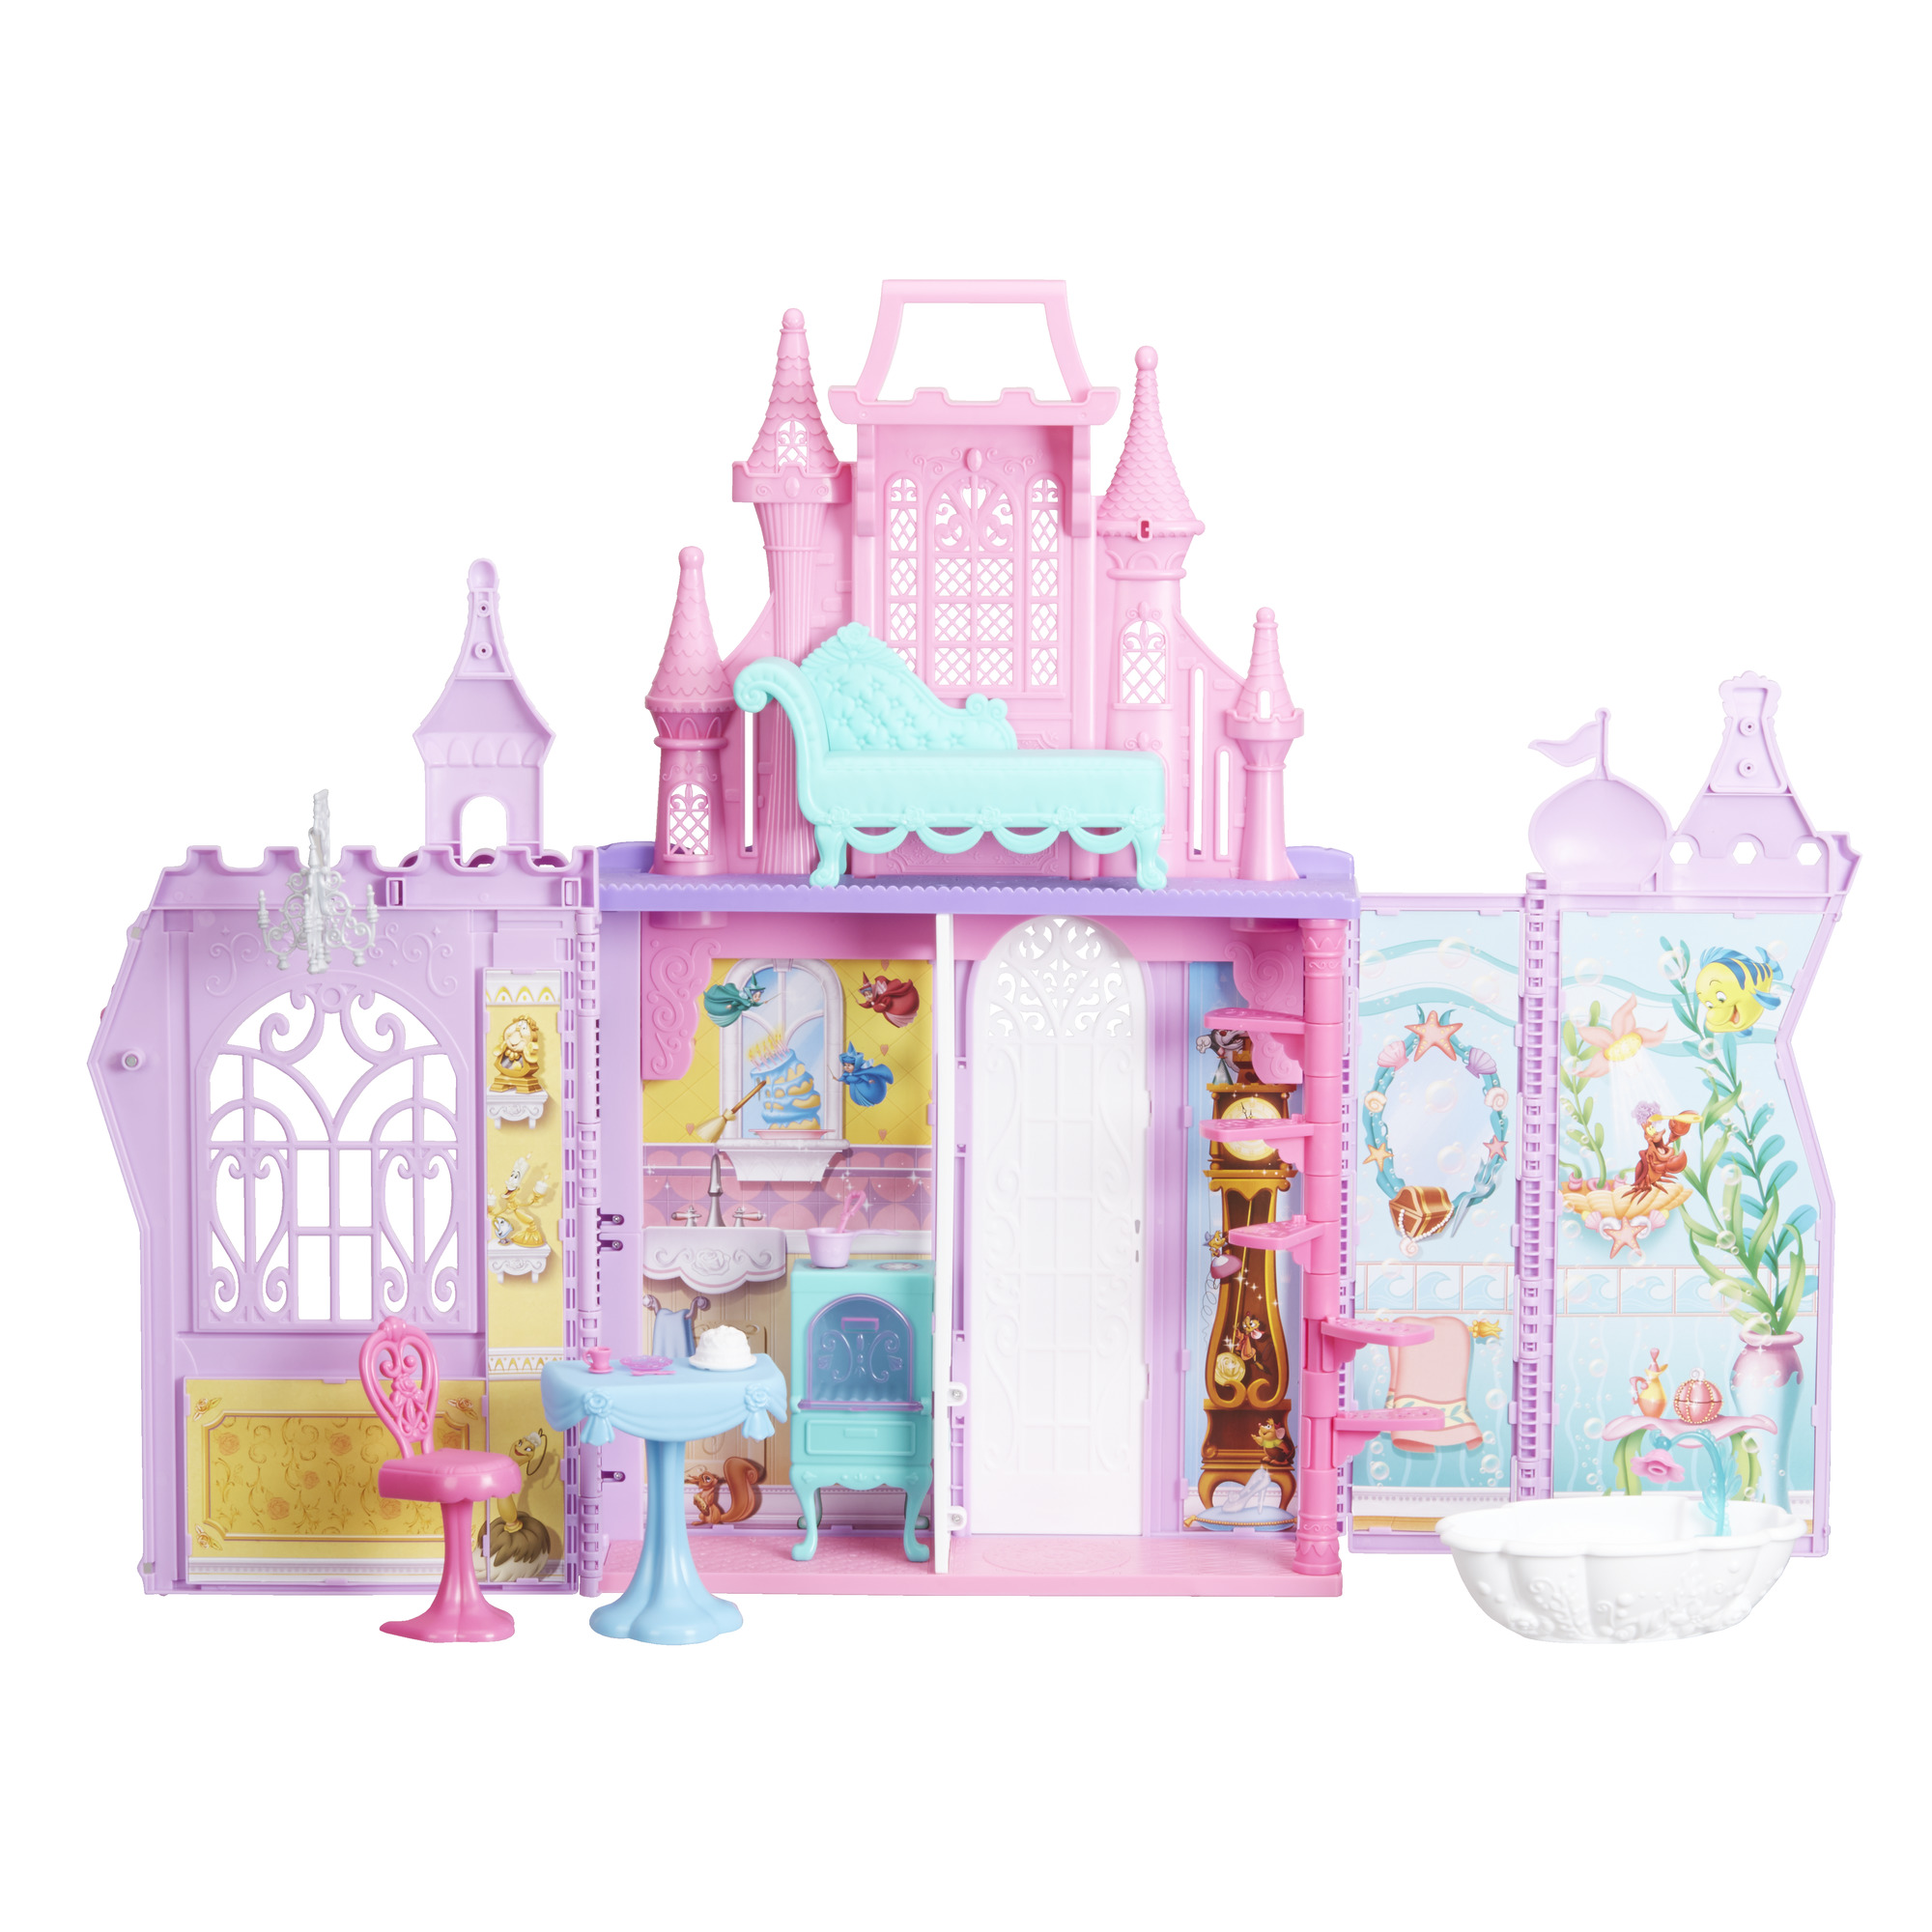 Disney Princess Pop-Up Palace by Hasbro